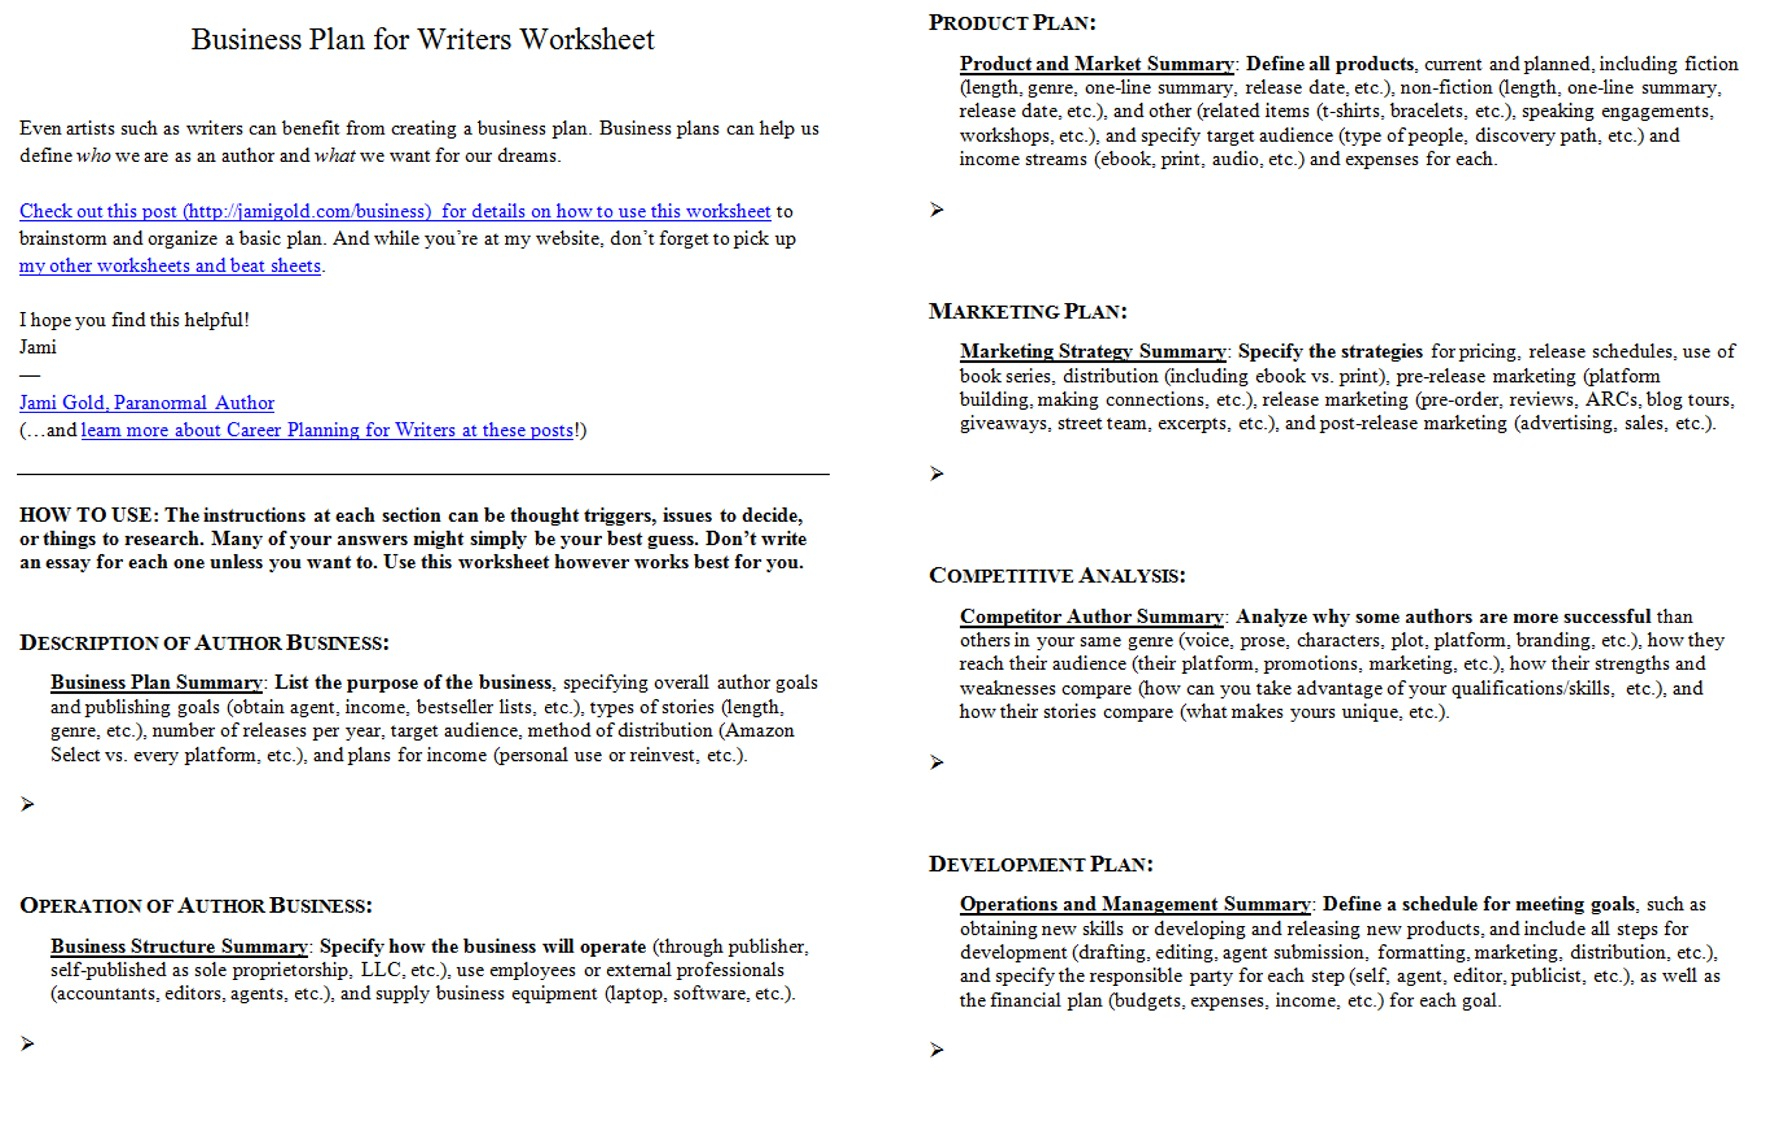 Proatmealus  Inspiring Worksheets For Writers  Jami Gold Paranormal Author With Lovely Screen Shot Of Both Pages Of The Business Plan For Writers Worksheet With Delightful Ch Digraph Worksheet Also Smart Goal Planning Worksheet In Addition Worksheet Slope Intercept Form And Primary Math Worksheets As Well As Fossil Fuel Worksheets Additionally Converting Fahrenheit To Celsius Worksheets From Jamigoldcom With Proatmealus  Lovely Worksheets For Writers  Jami Gold Paranormal Author With Delightful Screen Shot Of Both Pages Of The Business Plan For Writers Worksheet And Inspiring Ch Digraph Worksheet Also Smart Goal Planning Worksheet In Addition Worksheet Slope Intercept Form From Jamigoldcom